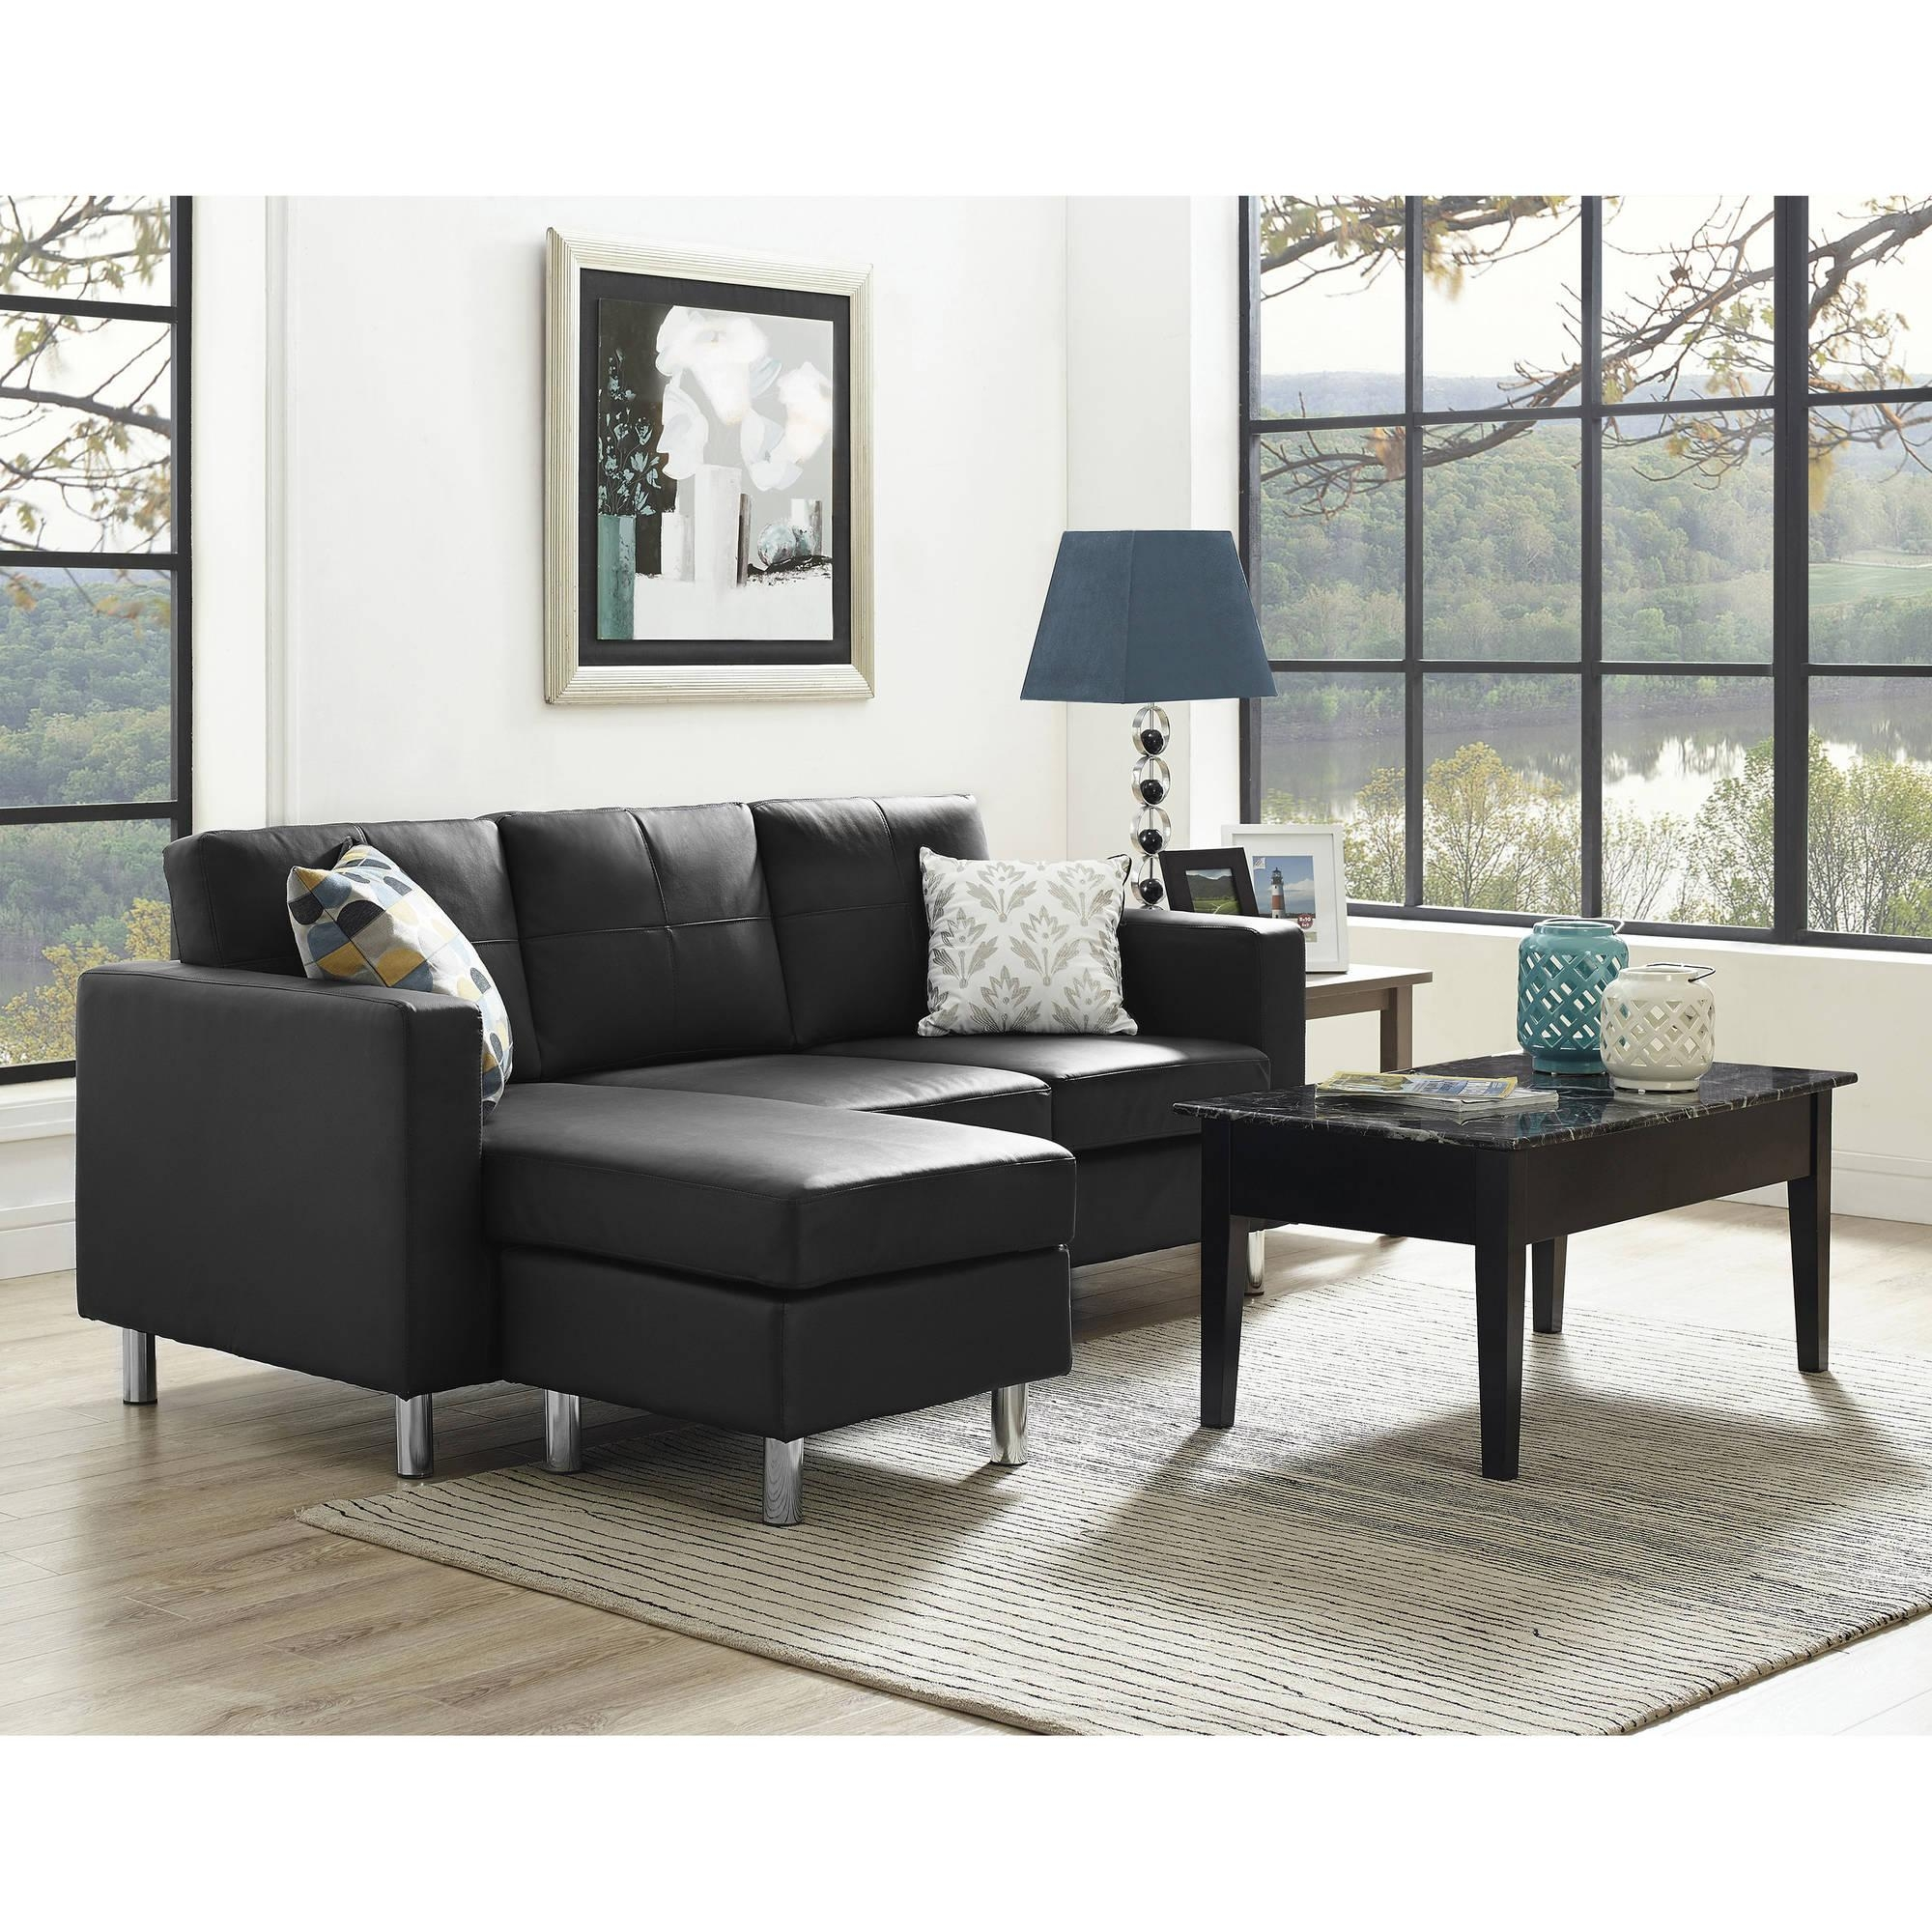 Featured Image of Sectional Small Space